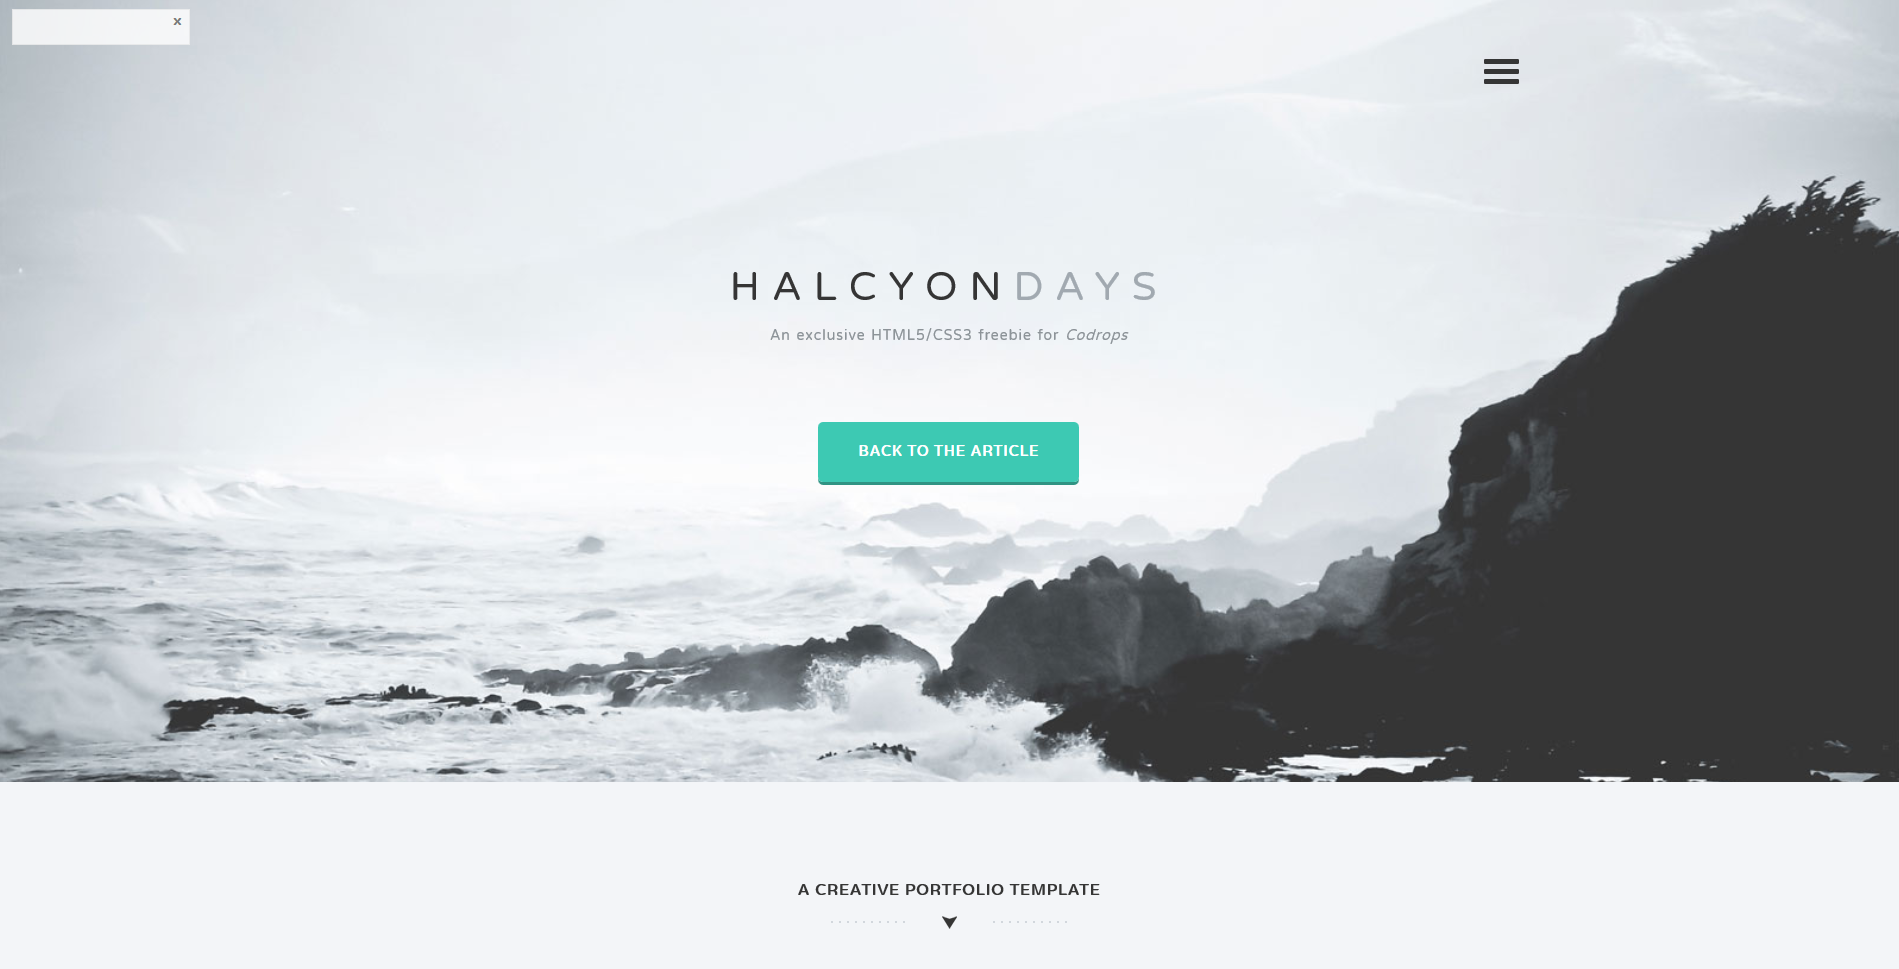 HALCYONDAYS An exclusive HTML5/CSS3 freebie for Codrops